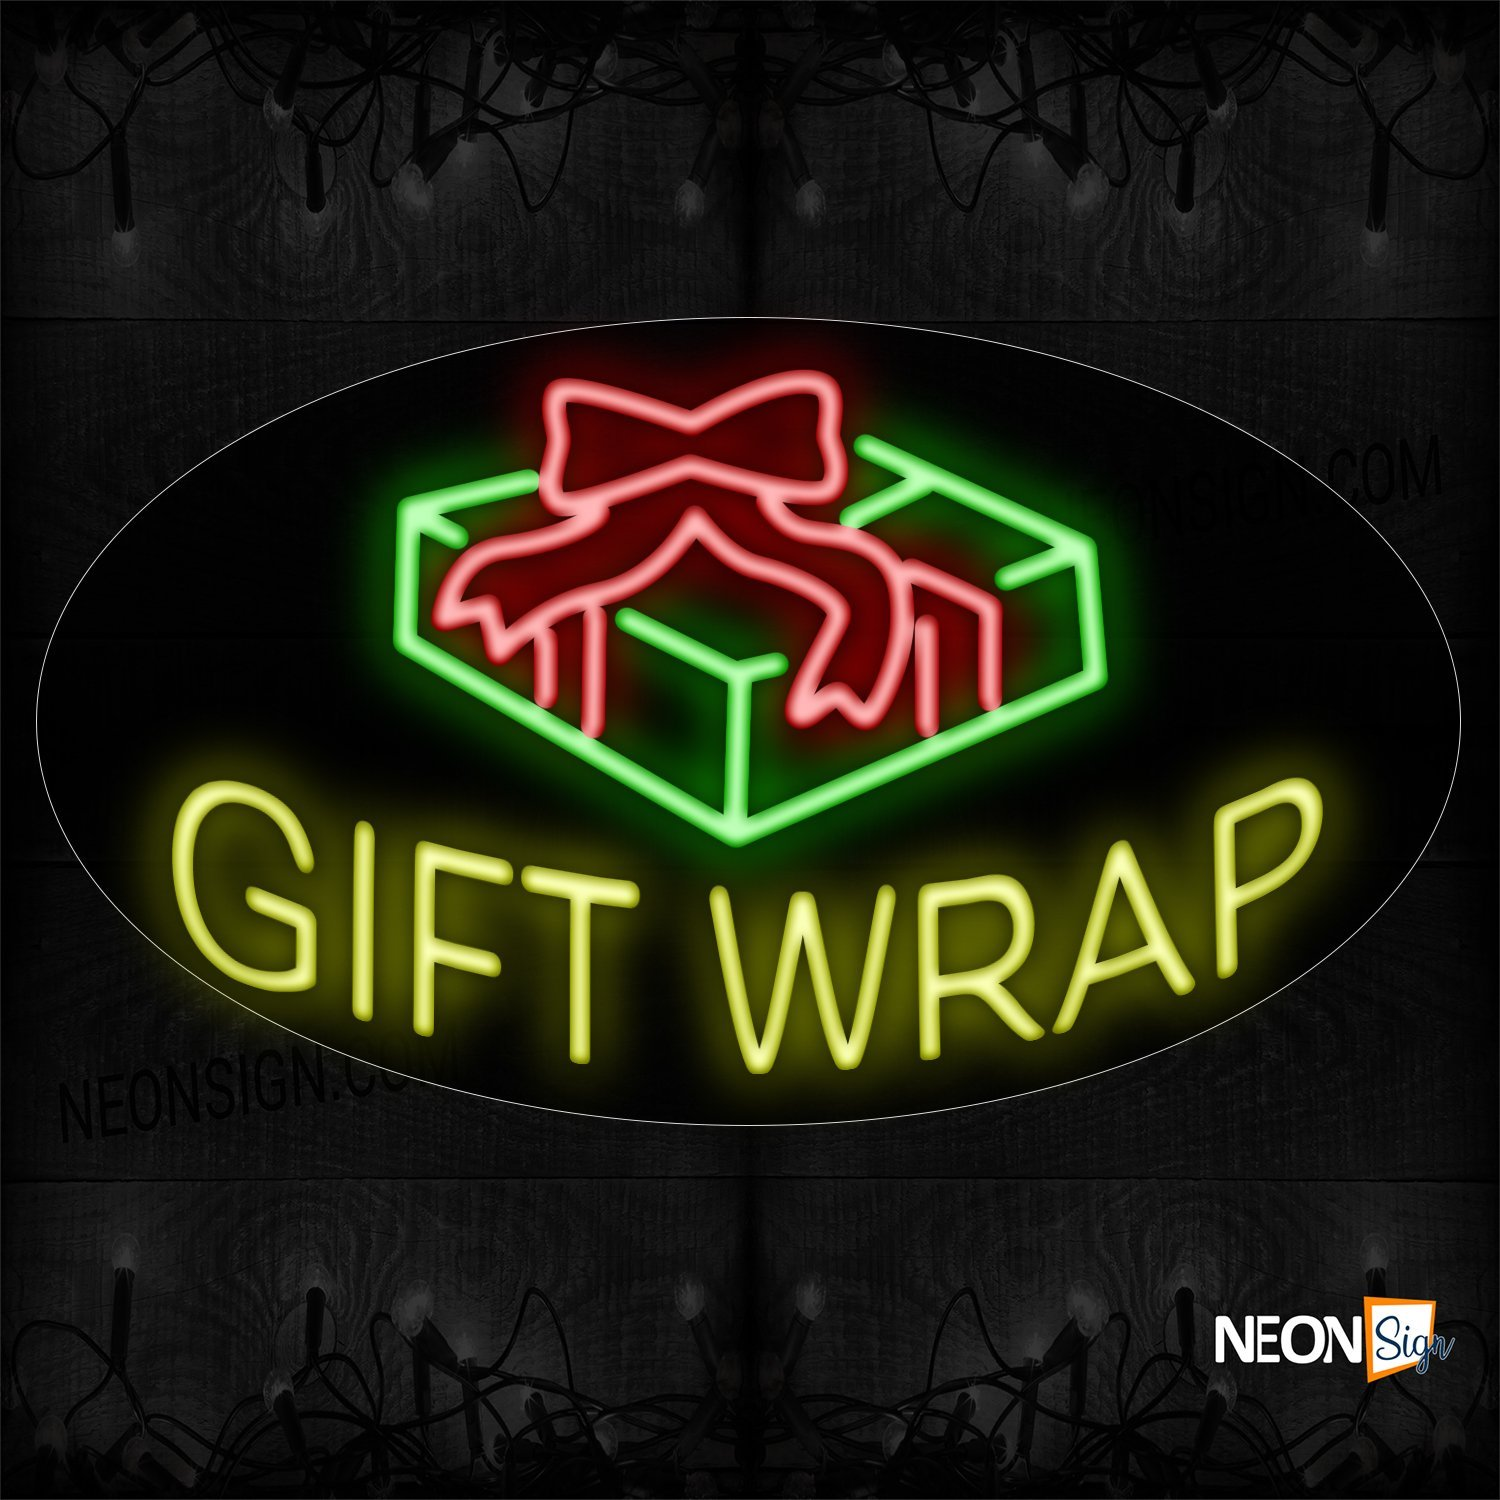 Image of 14347 Gift Wrap With Logo Neon Sign_17x30 Contoured Black Backing